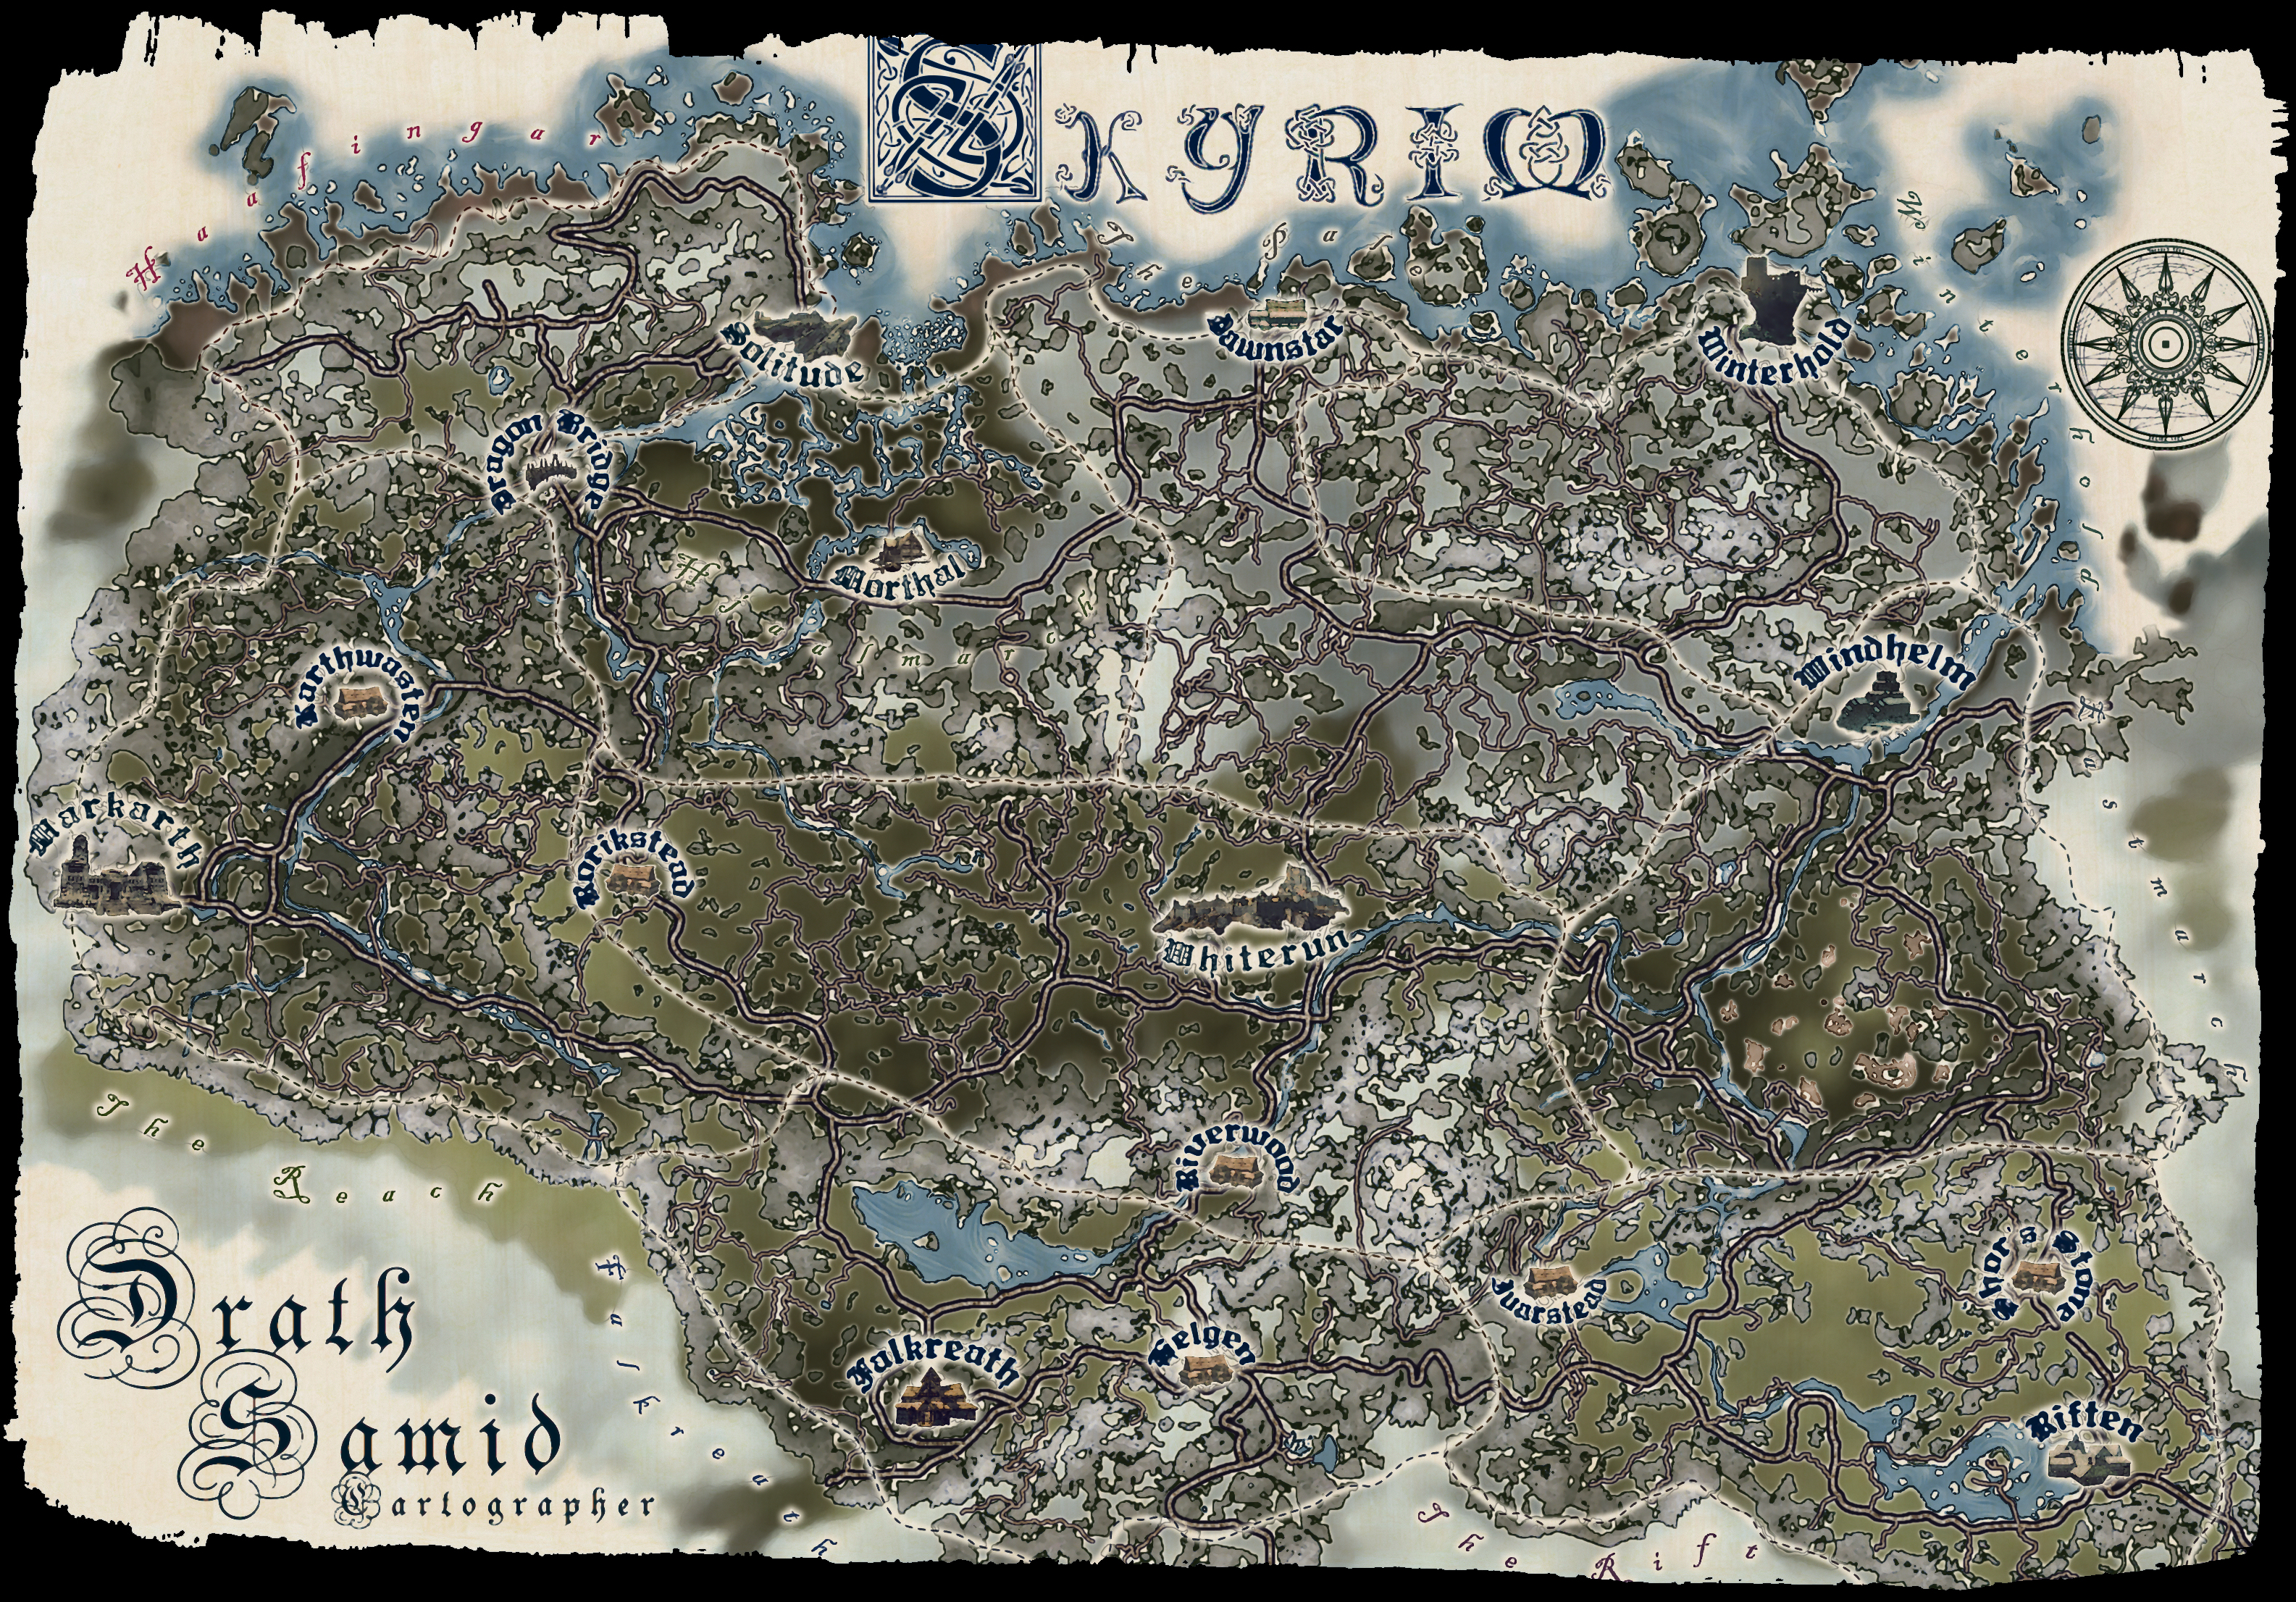 Drath Samid's map of Skyrim. by SamOfSuthSax on DeviantArt on just cause 2 map, elsweyr map, dark souls map, dragonborn map, elder scrolls map, dead island map, battlefield 3 map, knights of the nine map, riften map, l.a. noire map, cyrodiil map, whiterun map, morrowind map, mass effect map, pokemon map, minecraft map, oblivion map, halo 4 map, zelda map,